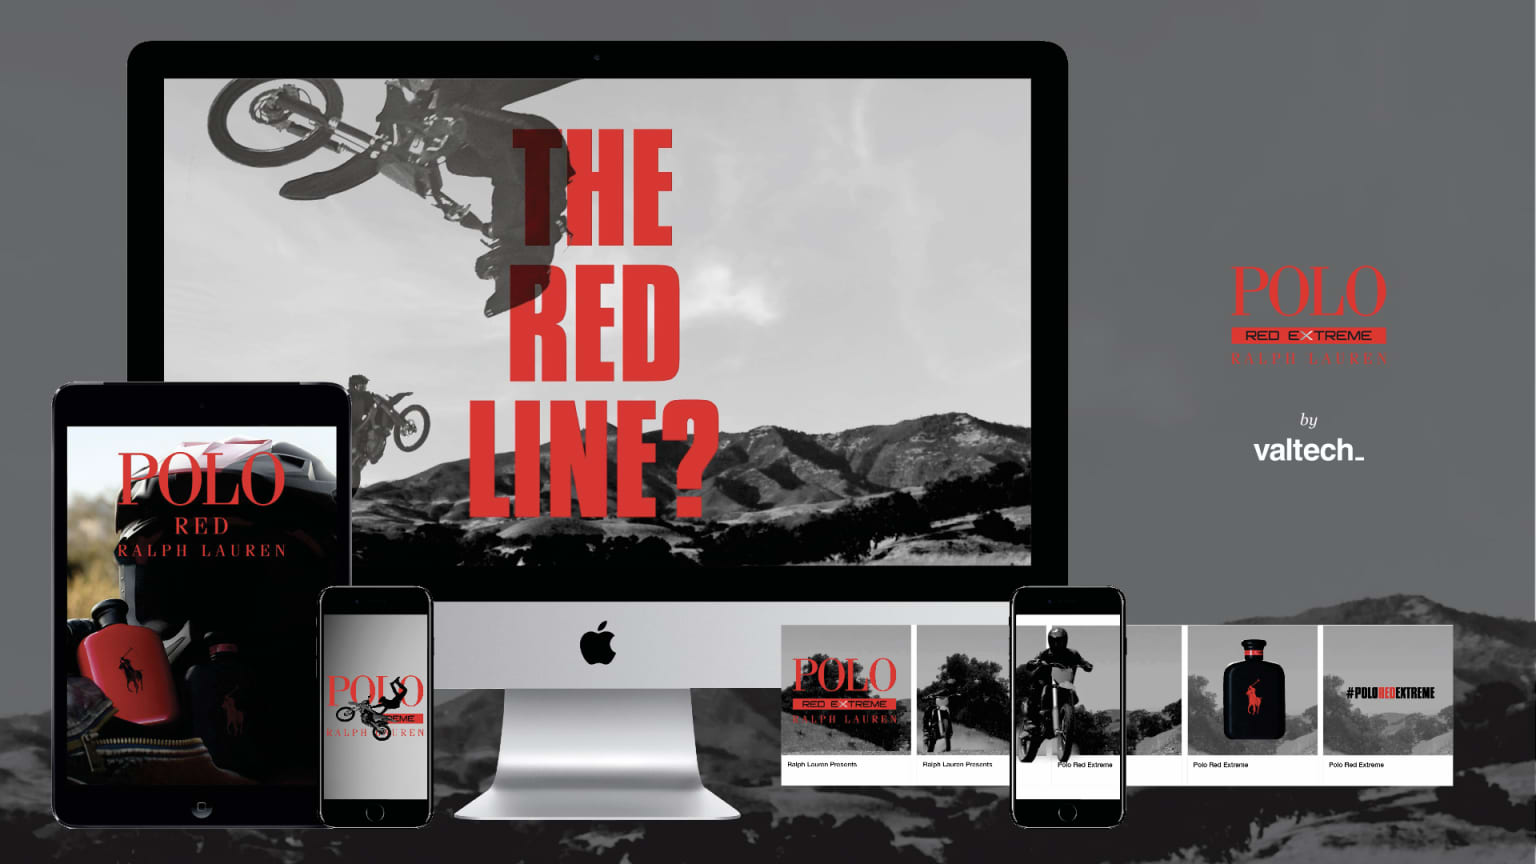 Polo Red Extreme Digital Campaign